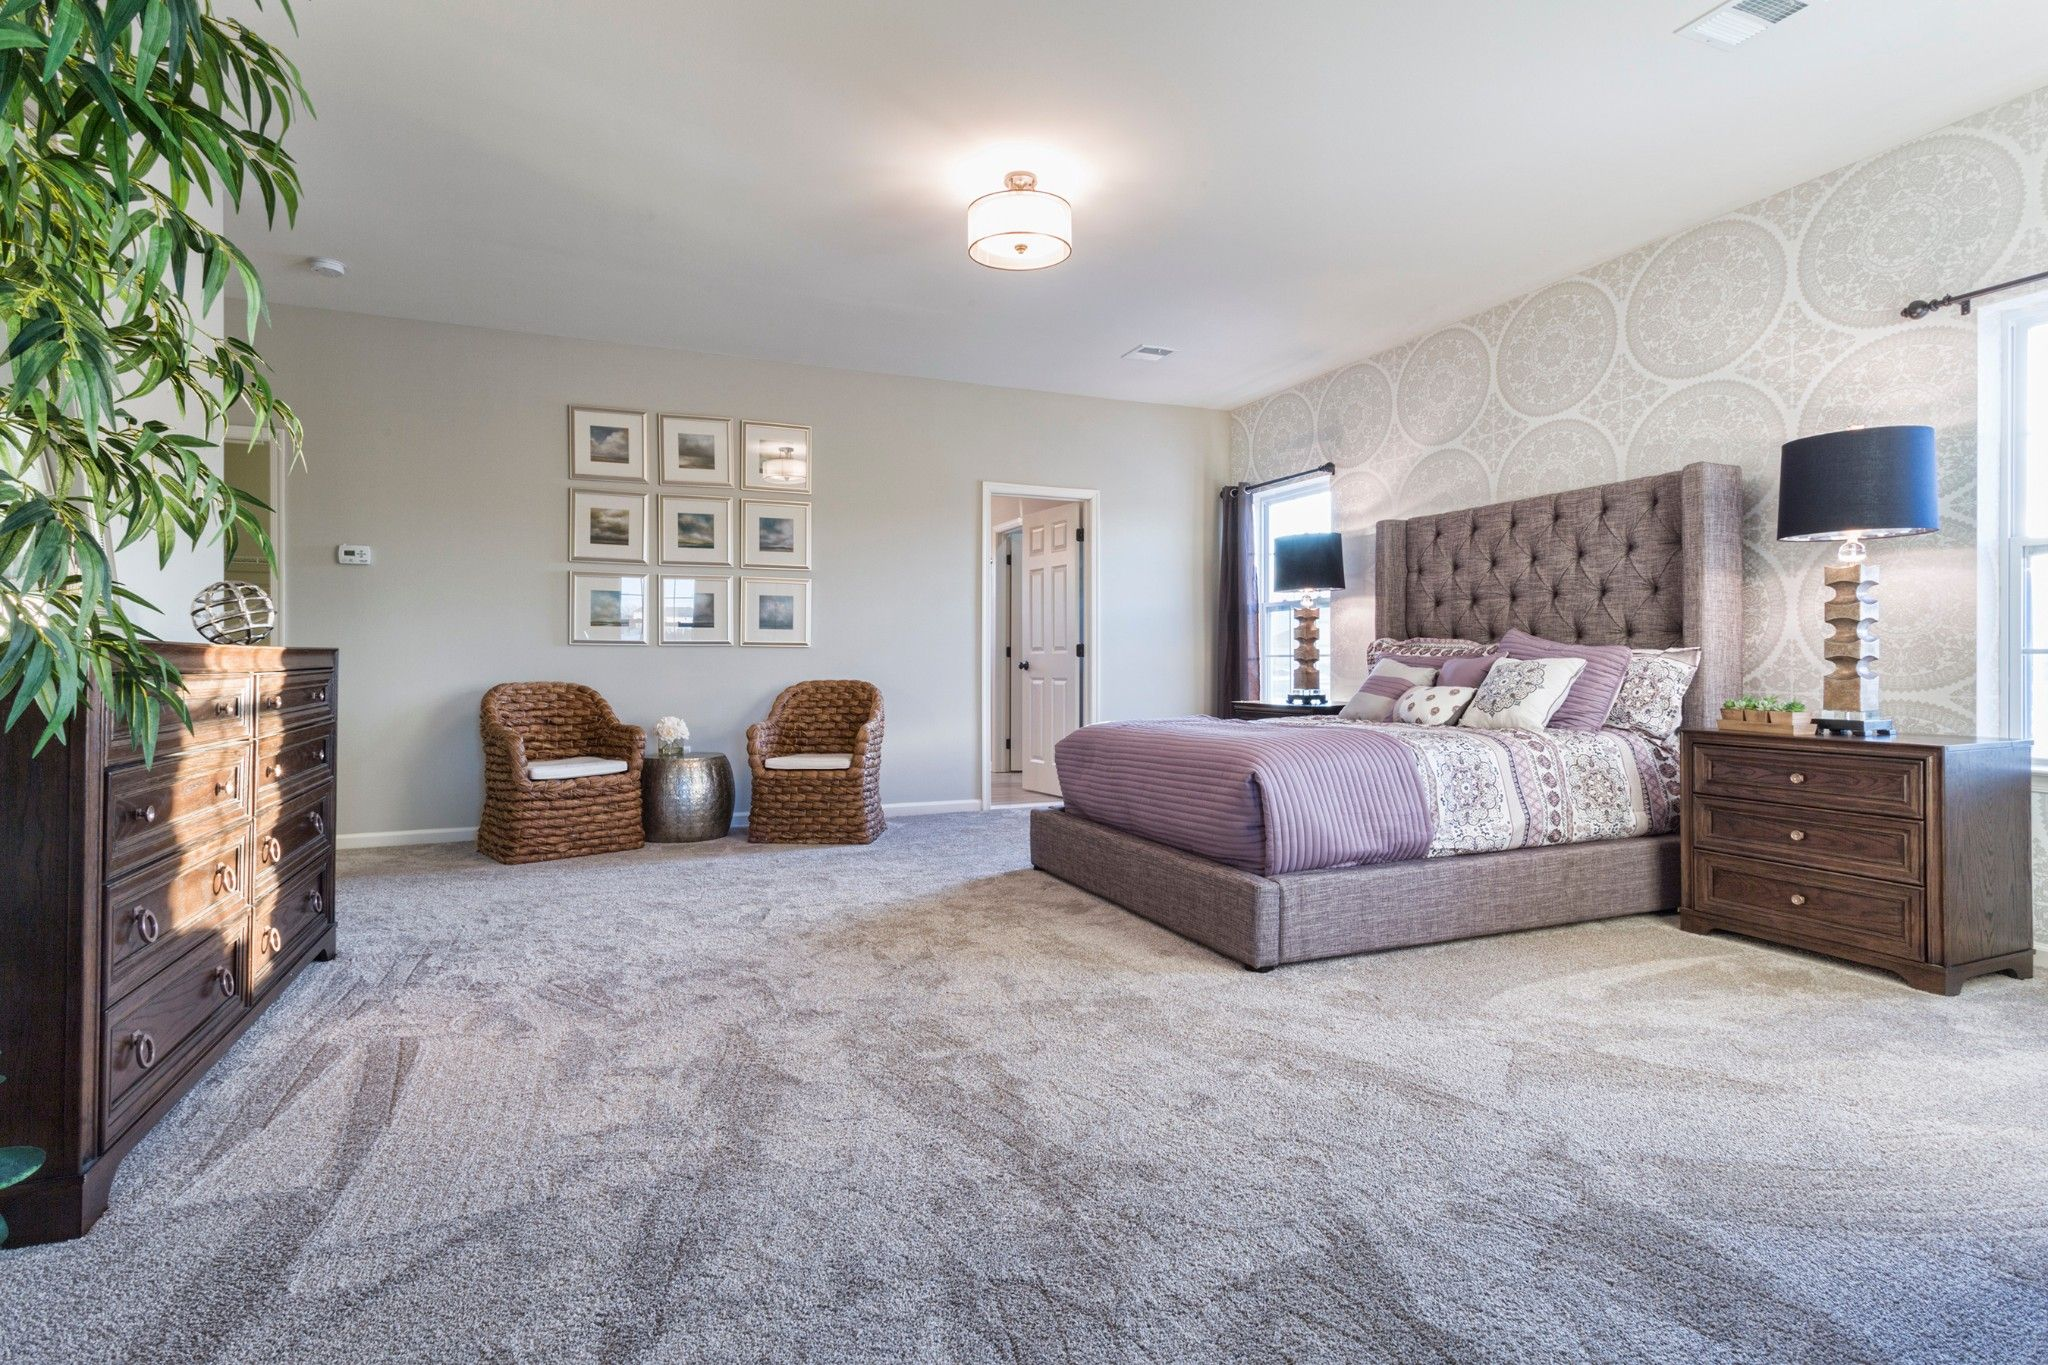 Bedroom featured in the Breckenridge Grande Farmhouse By Tuskes Homes in Allentown-Bethlehem, PA